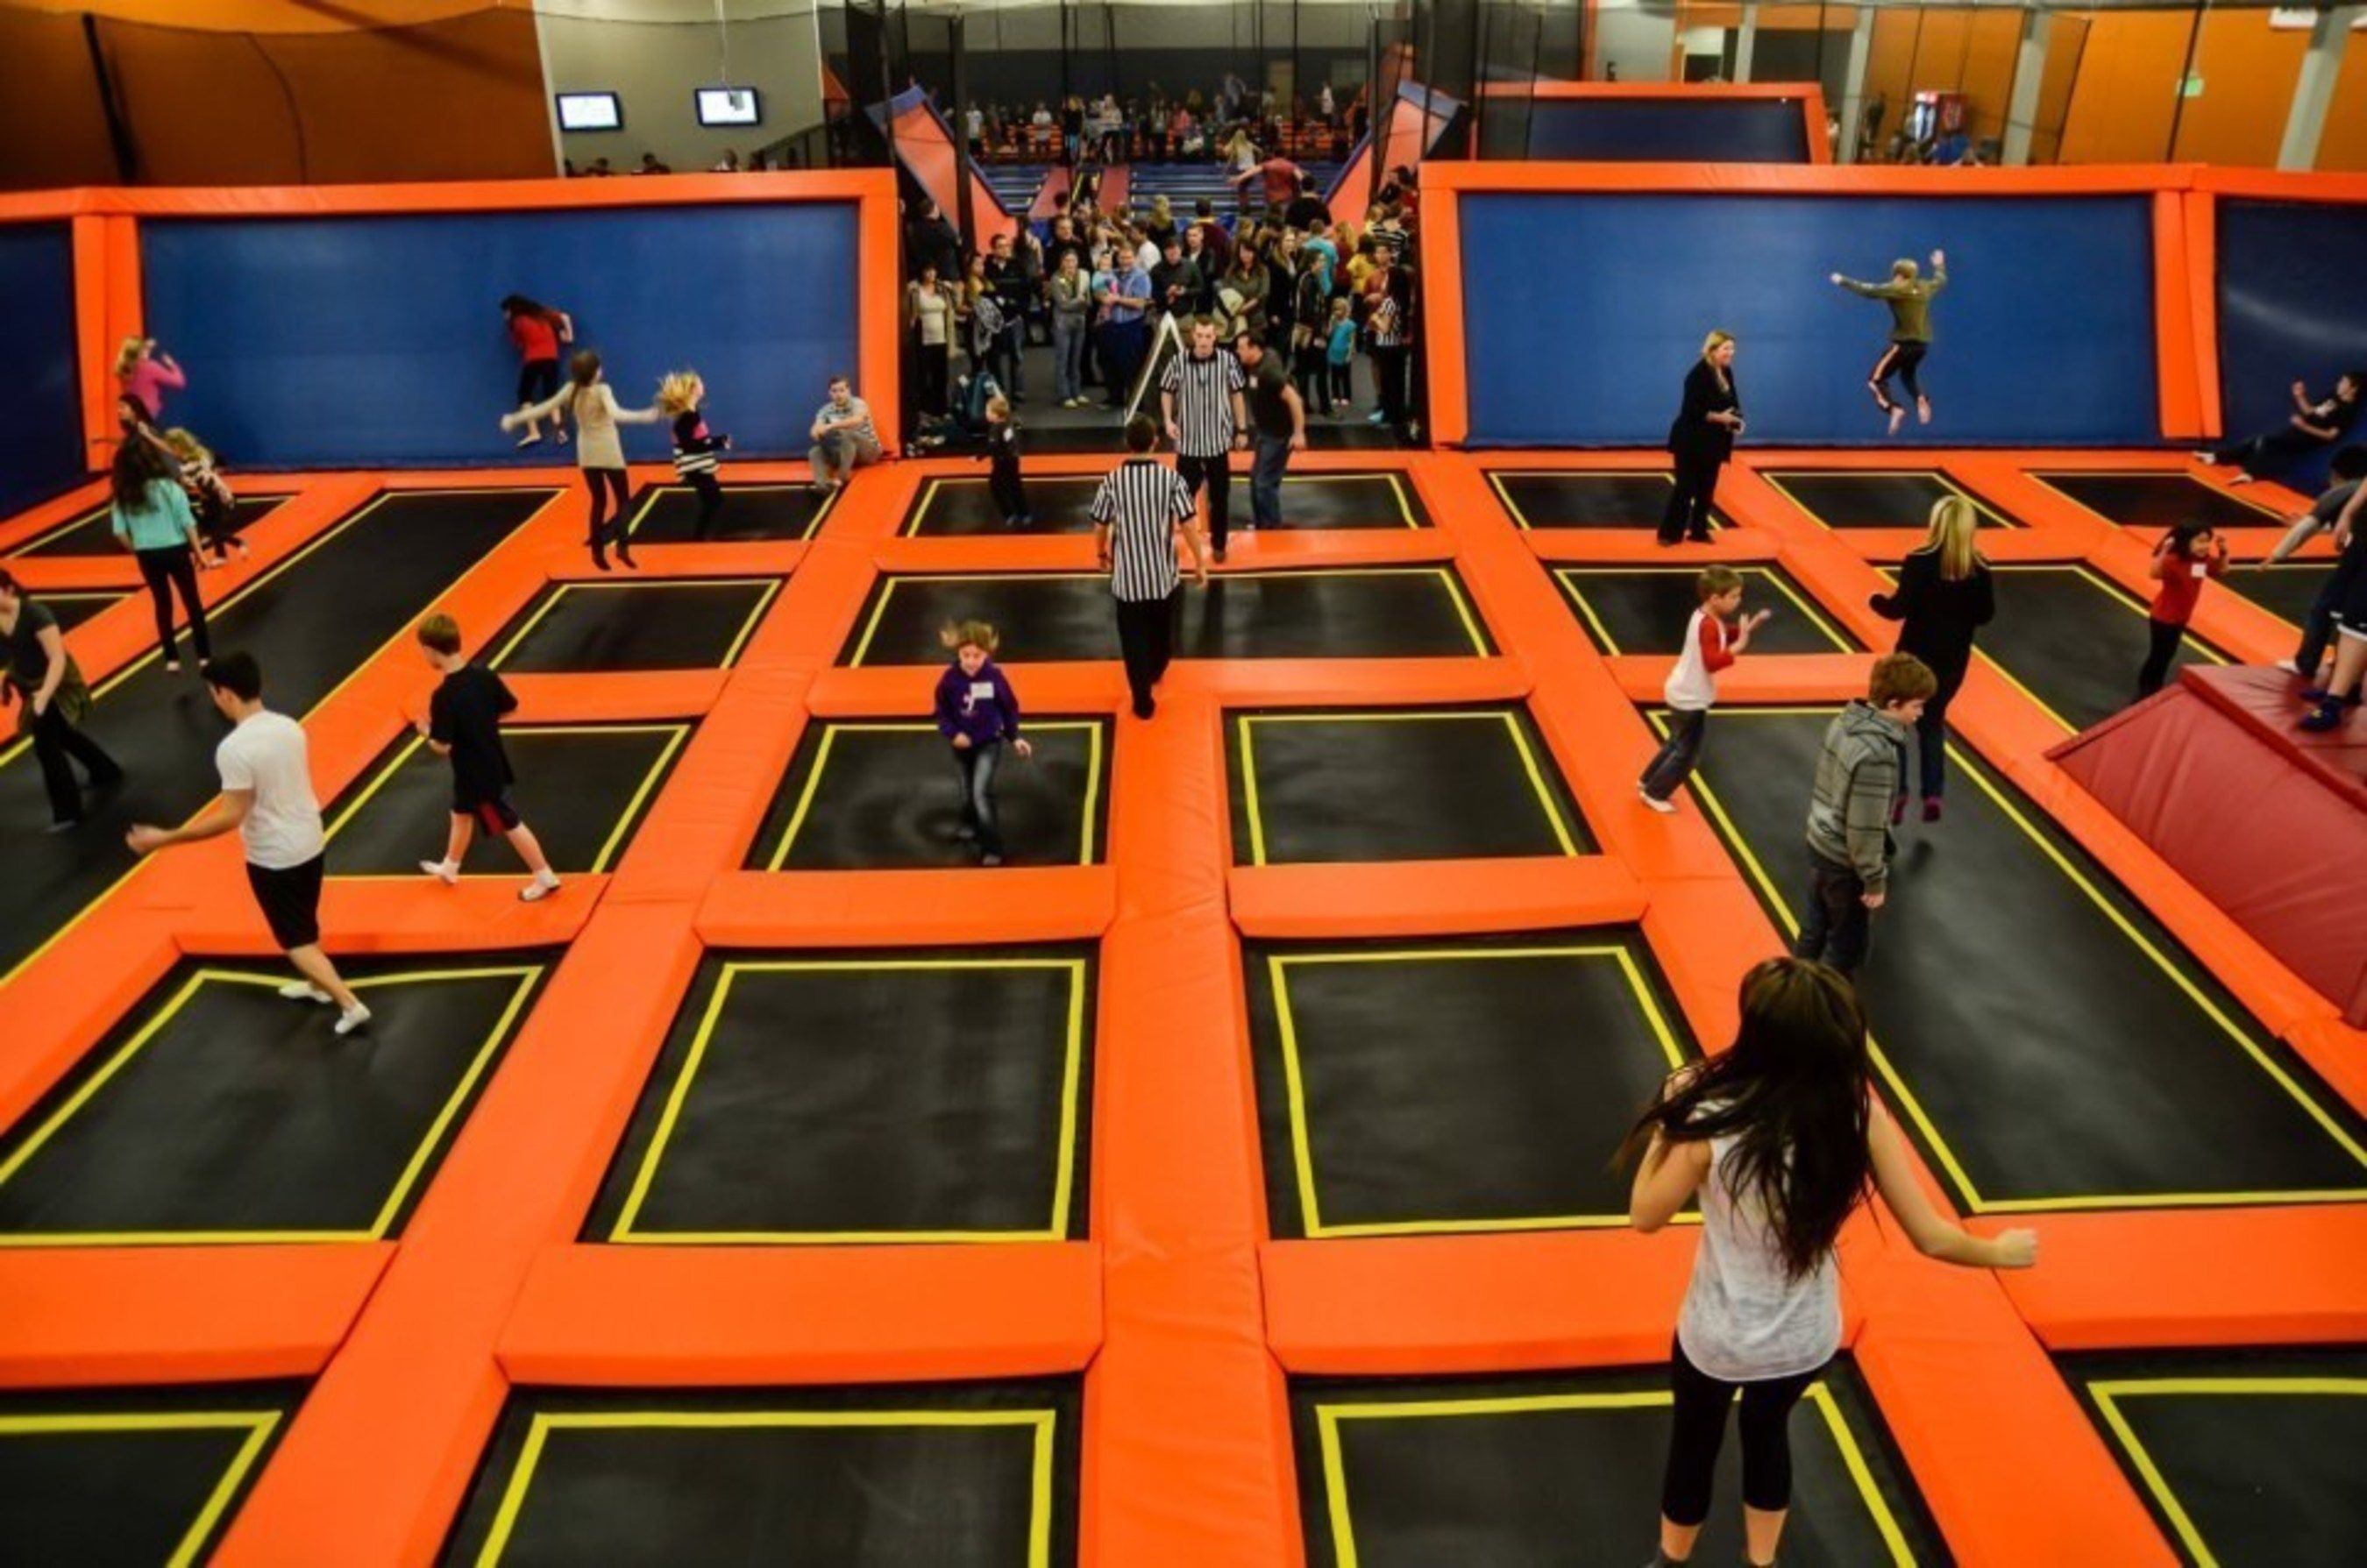 Big Air Trampoline Task Force Laser Tag Trampoline park